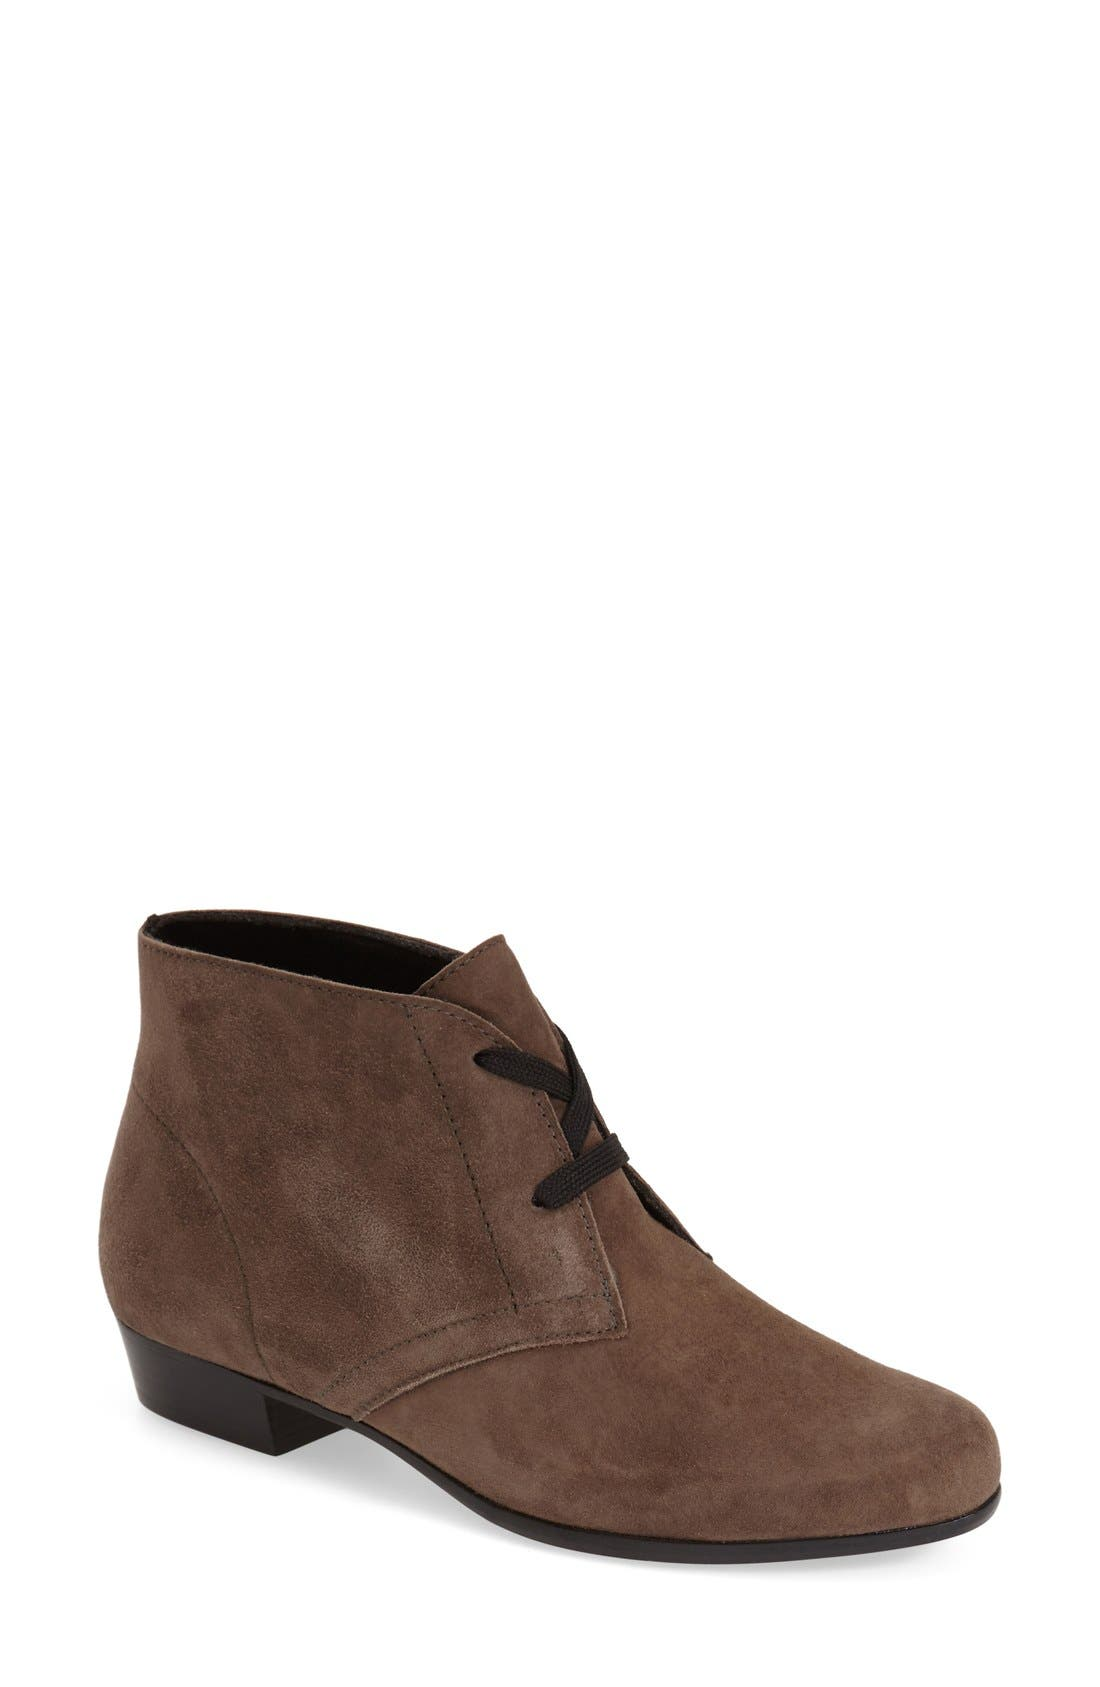 MUNRO 'Sloane' Lace Up Bootie